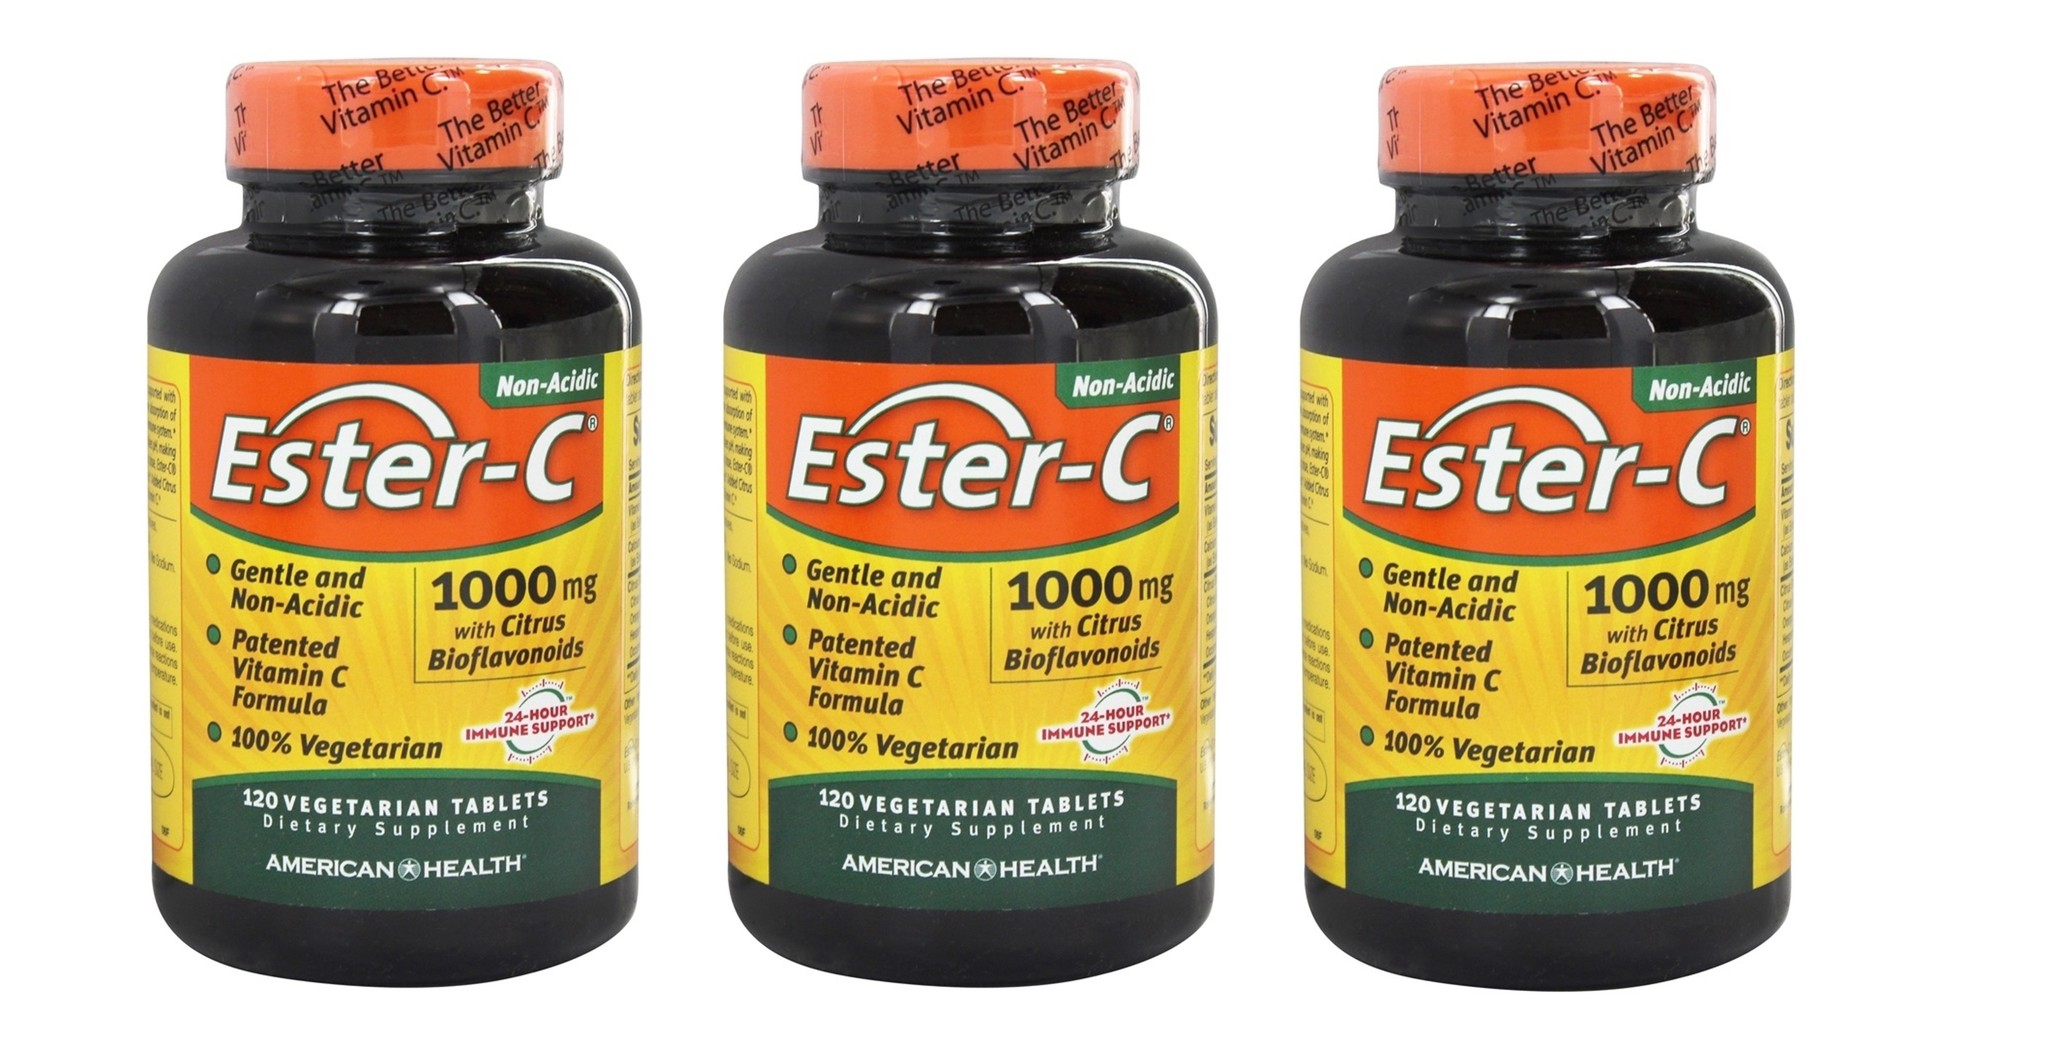 American Health Ester-C with Citrus Bioflavonoids 1000 mg, 120 Tablets, 3-packs